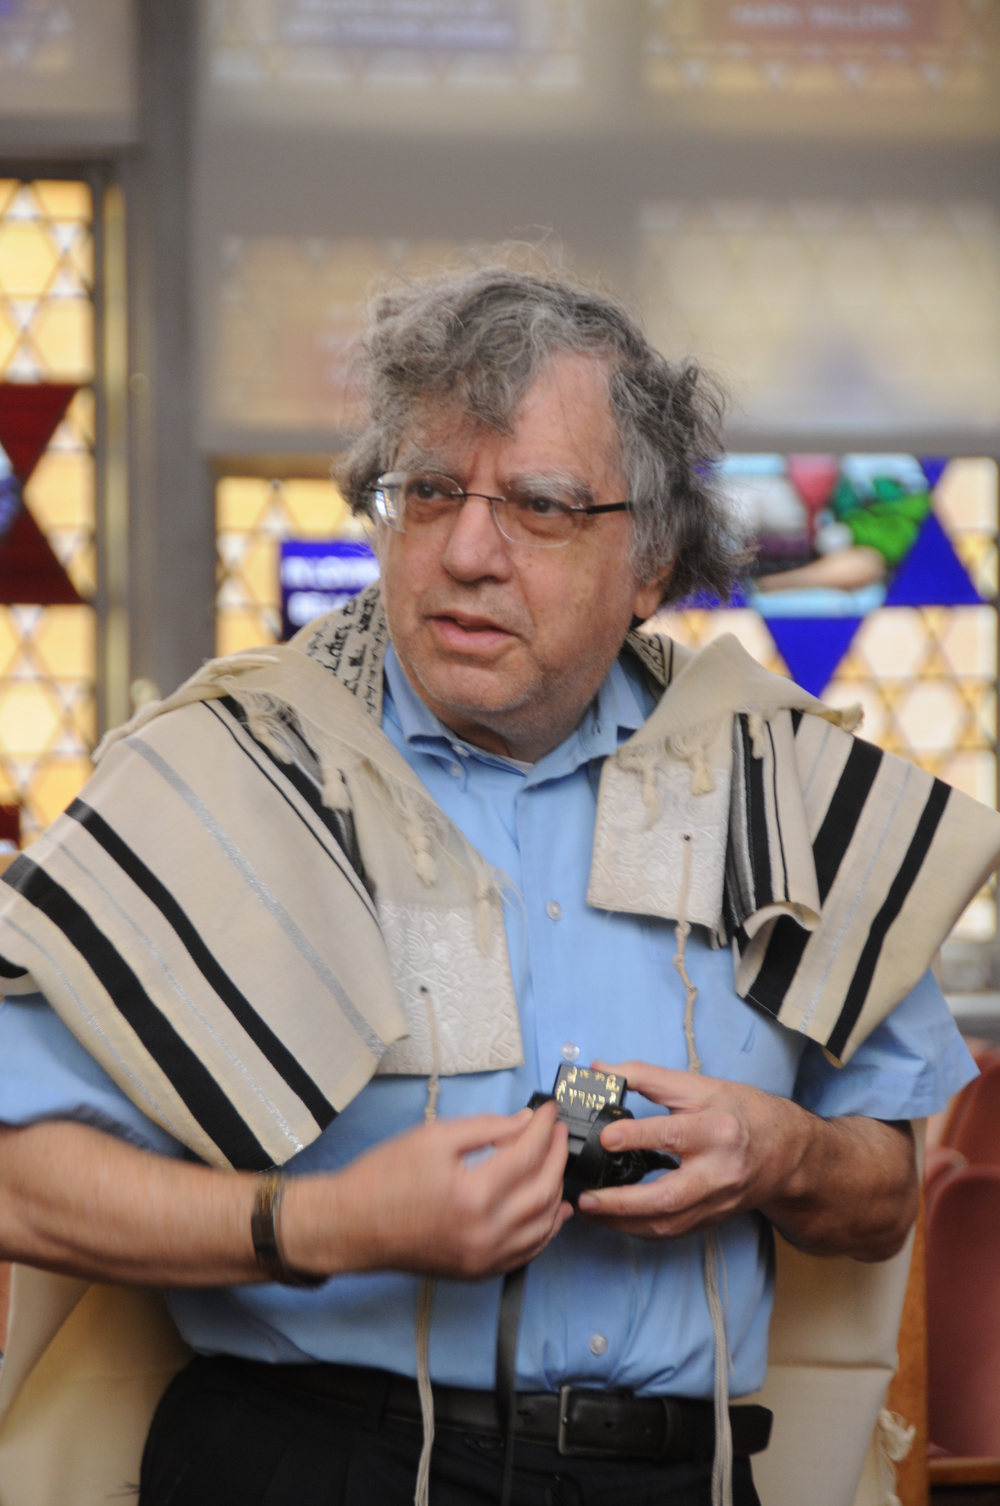 Steven Lesh, Esq. joins the LPJC Morning Minyan